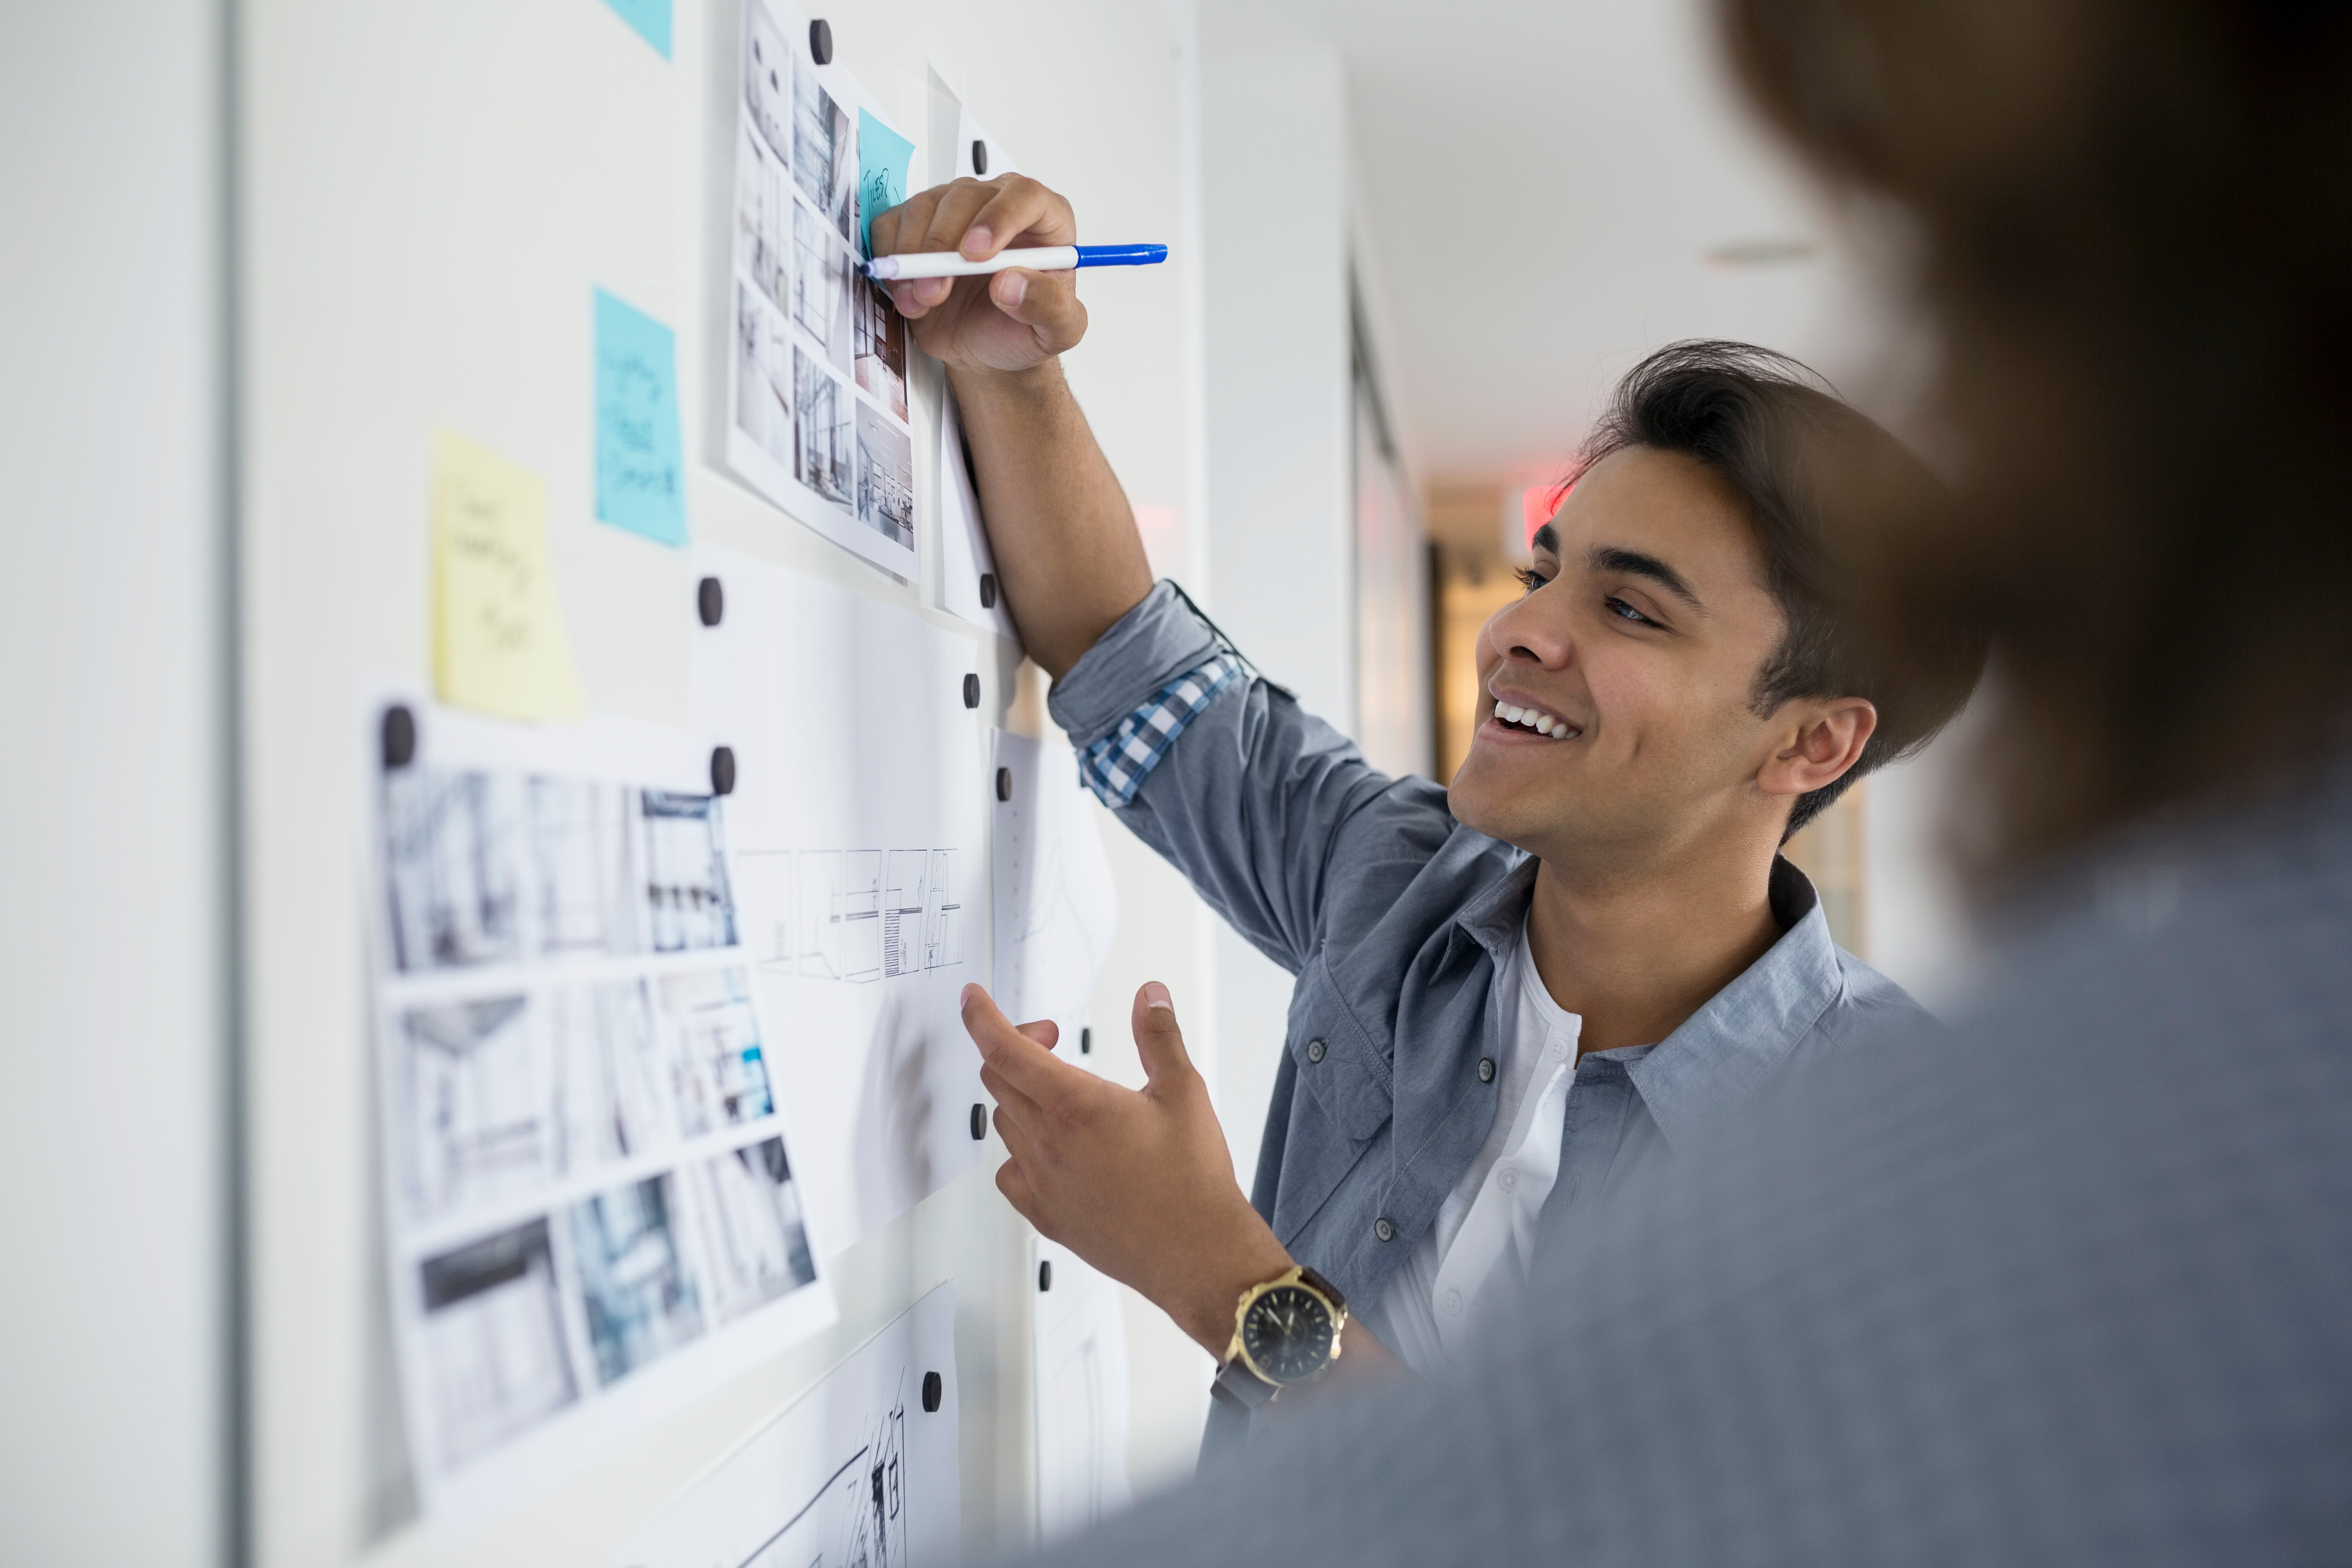 Change Management Needs an Update to Bring Meaningful Change